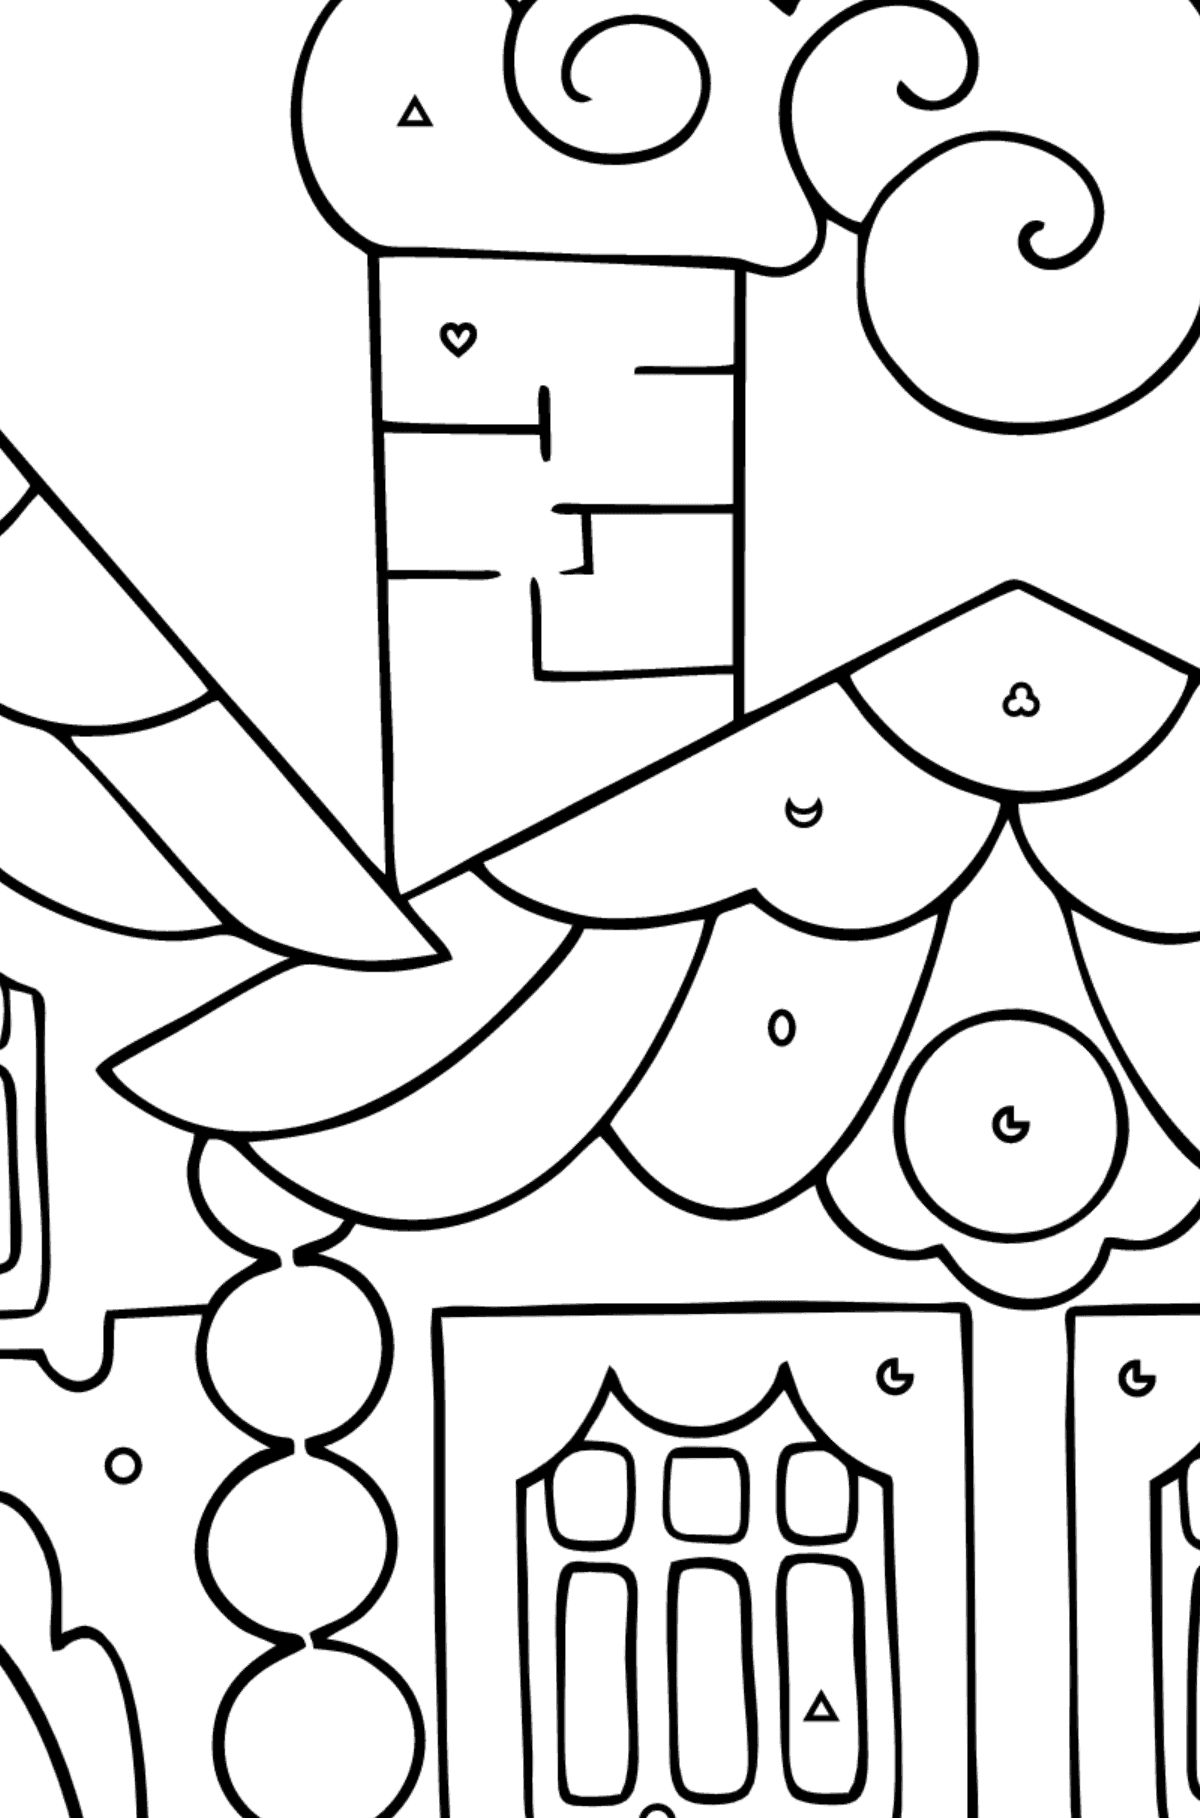 Coloring Page - A House in the Forest for Children  - Color by Geometric Shapes